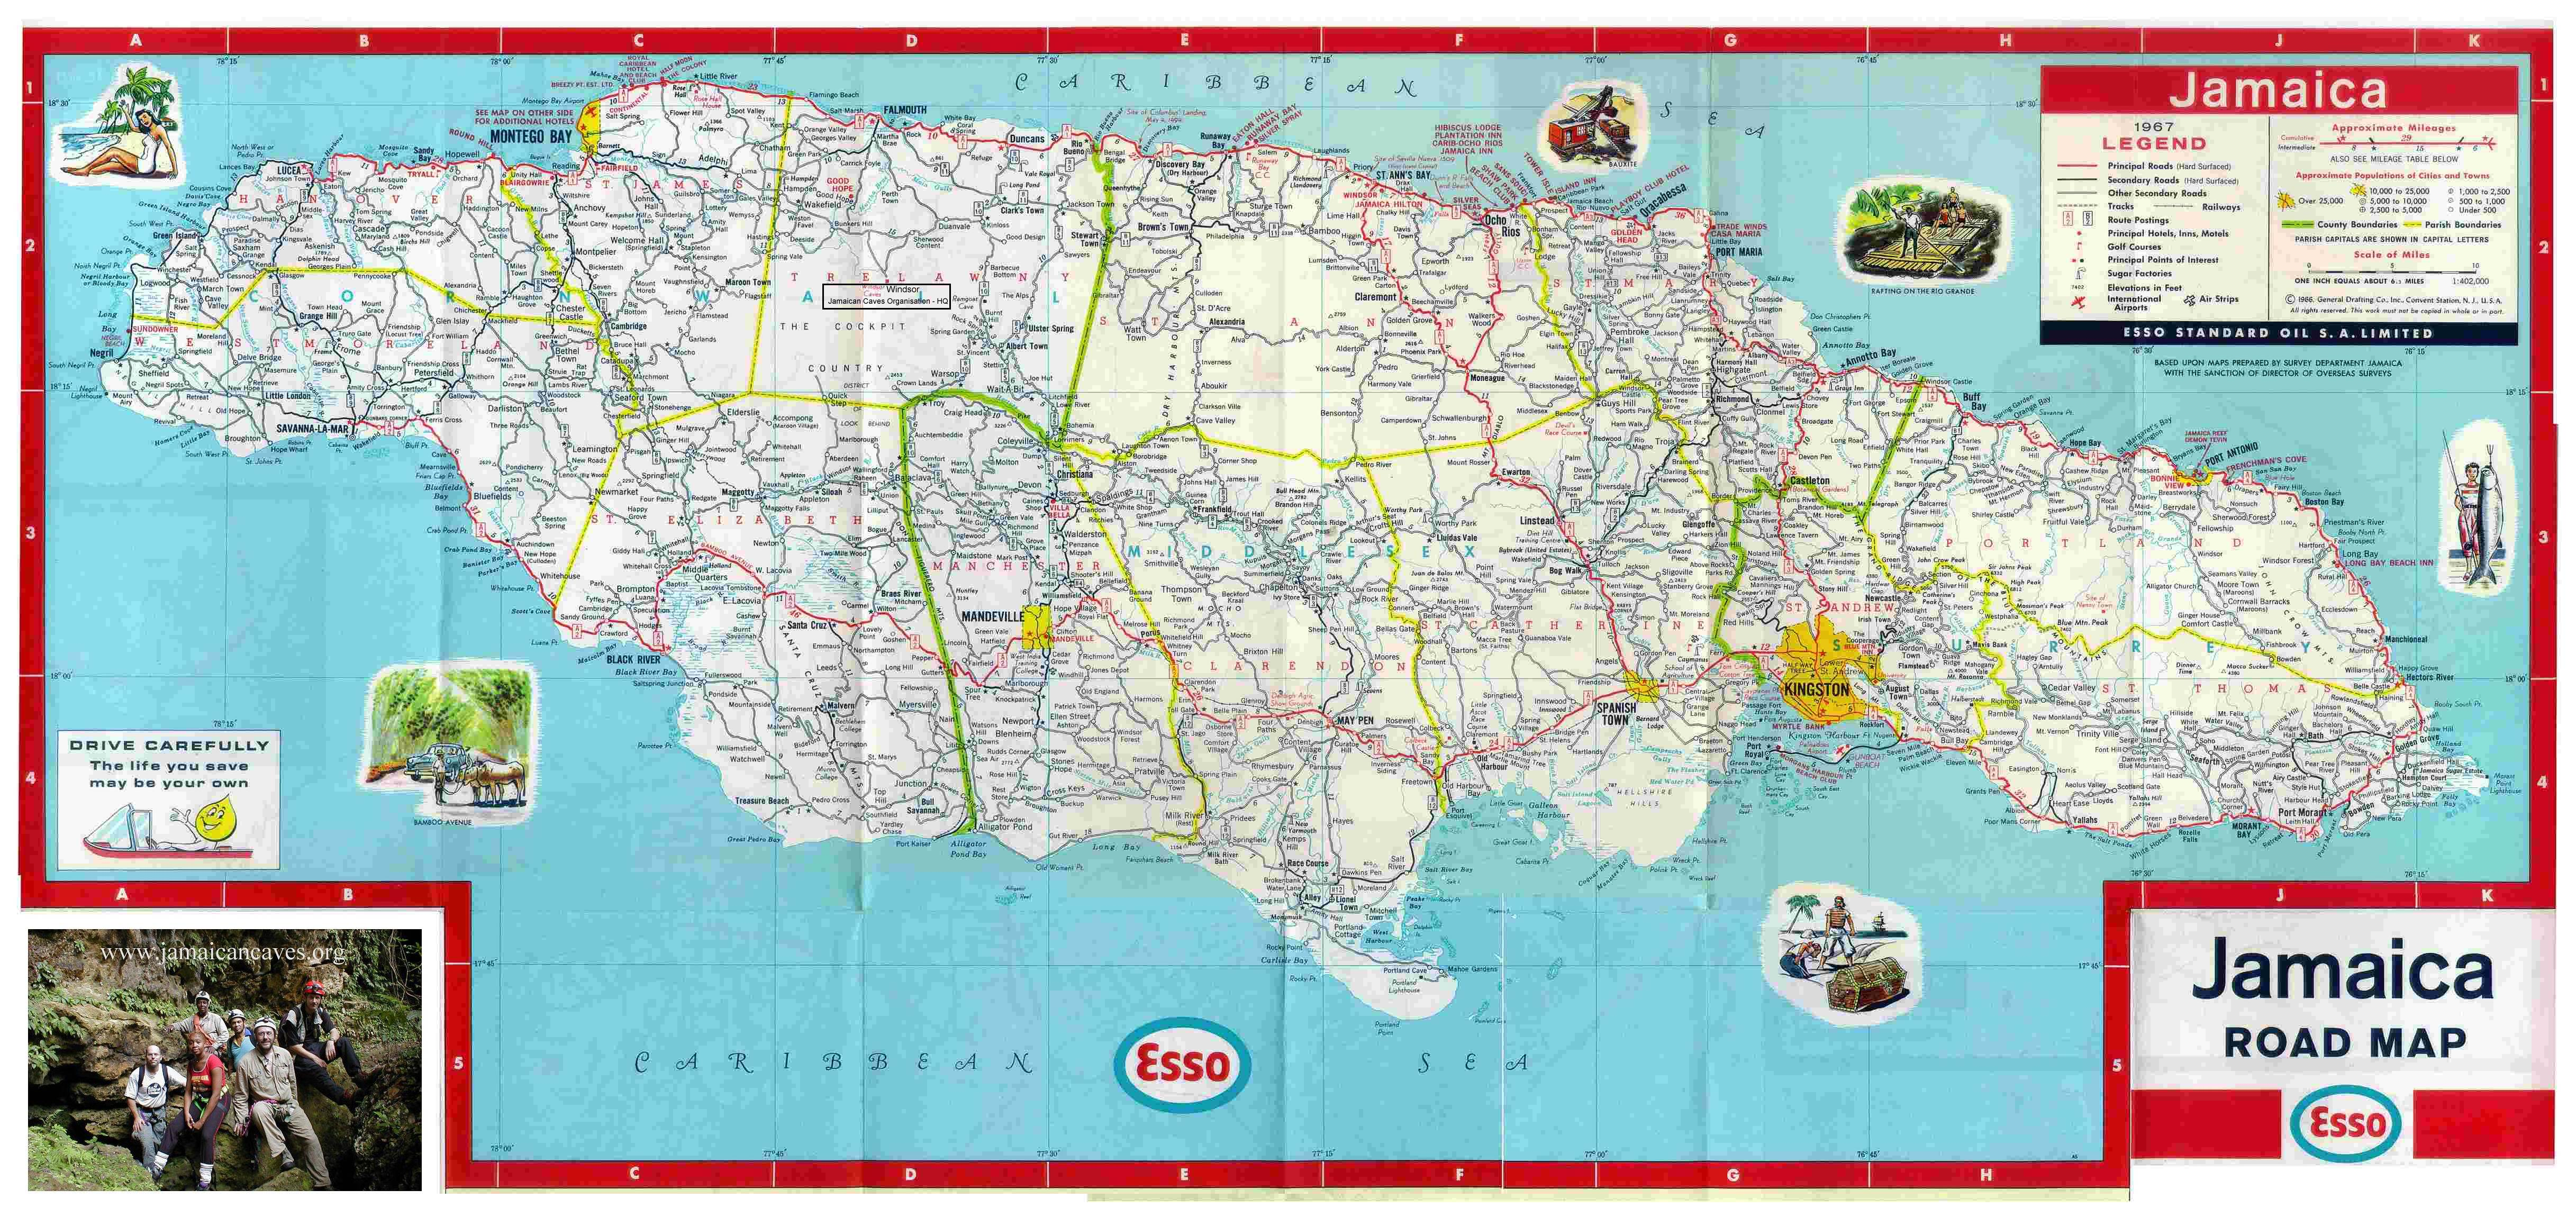 Show Me A Map Of Jamaica Jamaica Road Map, Free Jamaican Road Maps Online